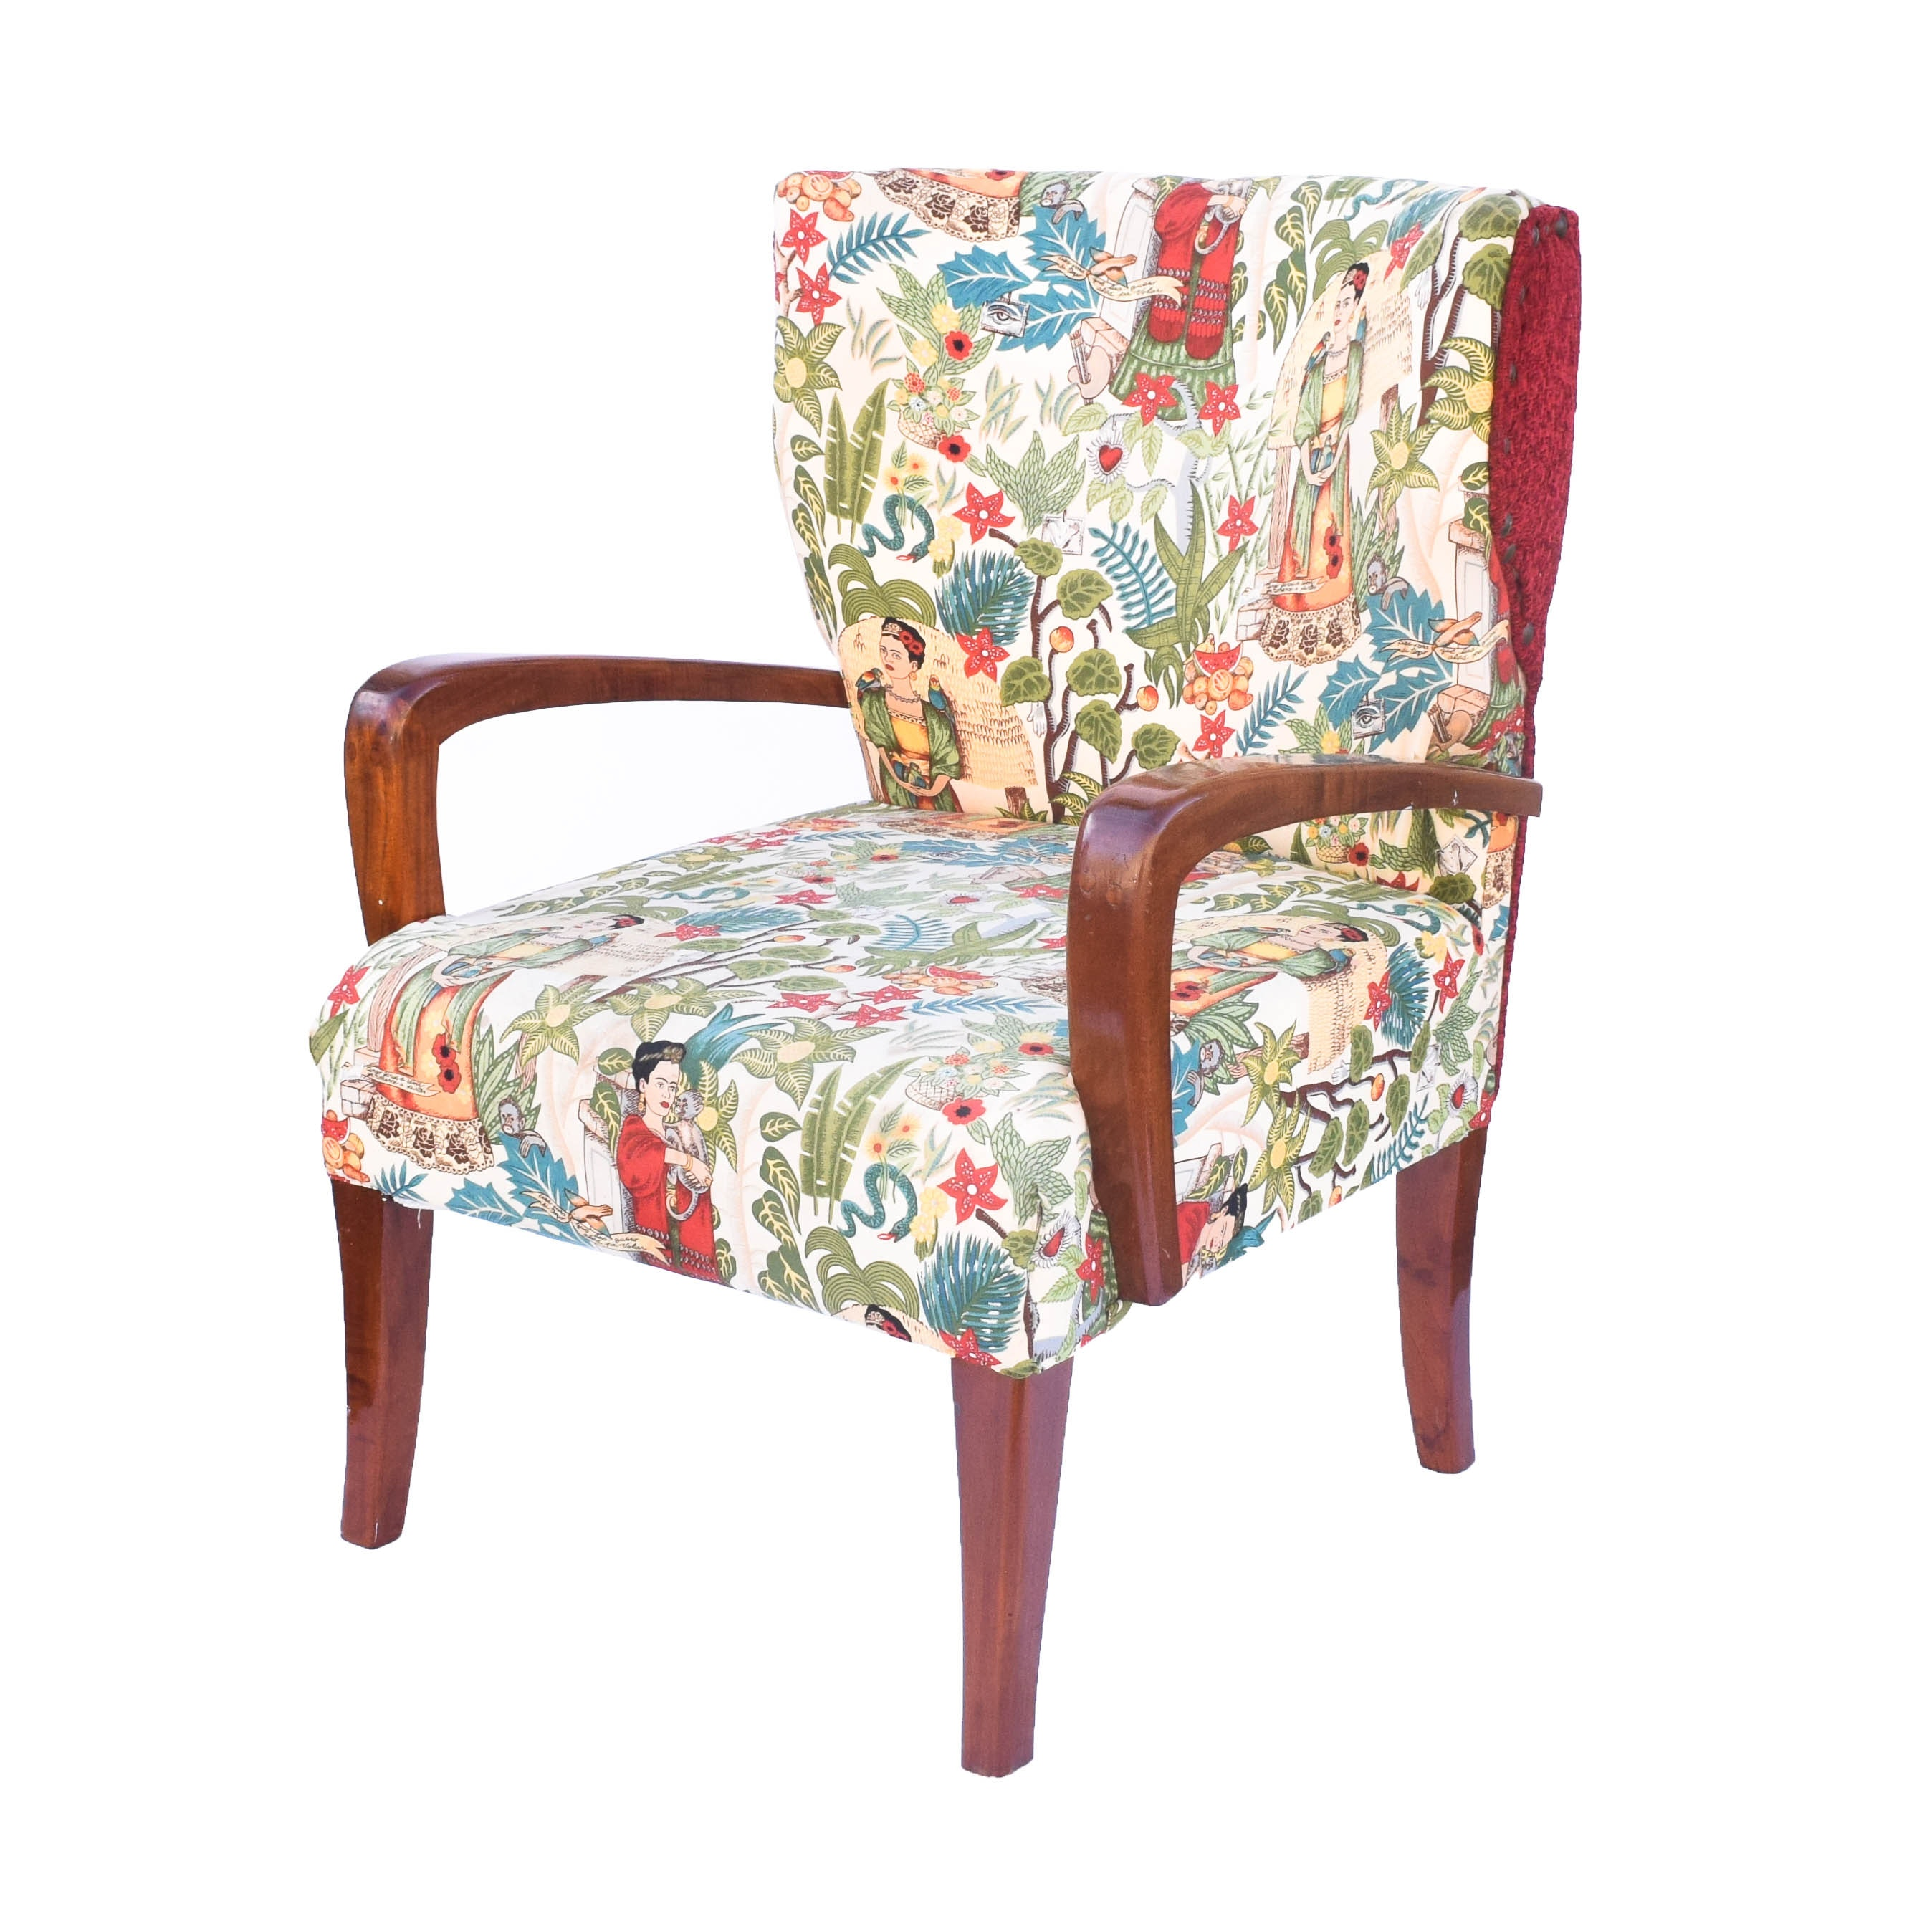 Mid-Century Accent Chair with Frida Kahlo Themed Upholstery